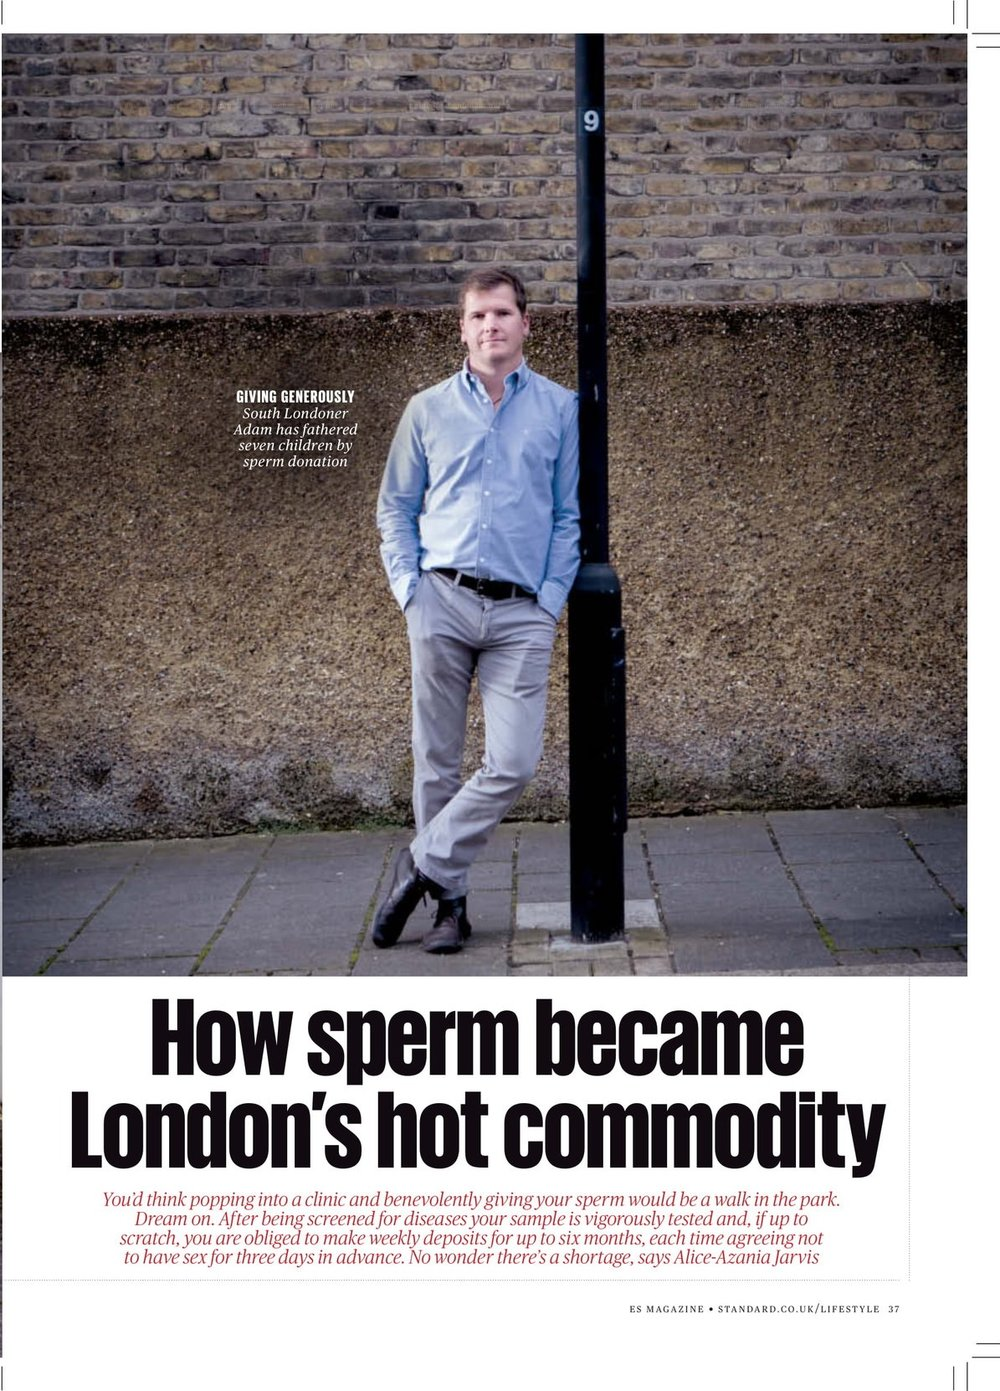 How sperm became London's hot commodity - It was the summer of 2012 when Adam, a 35-year-old IT consultant from Elephant and Castle, spotted an ad for the London Sperm Bank in the back pages of gay lifestyle bible Attitude magazine. It promised a free sperm count to anyone who gave a sample at its Harley Street clinic. His curiosity was piqued…READ MORE